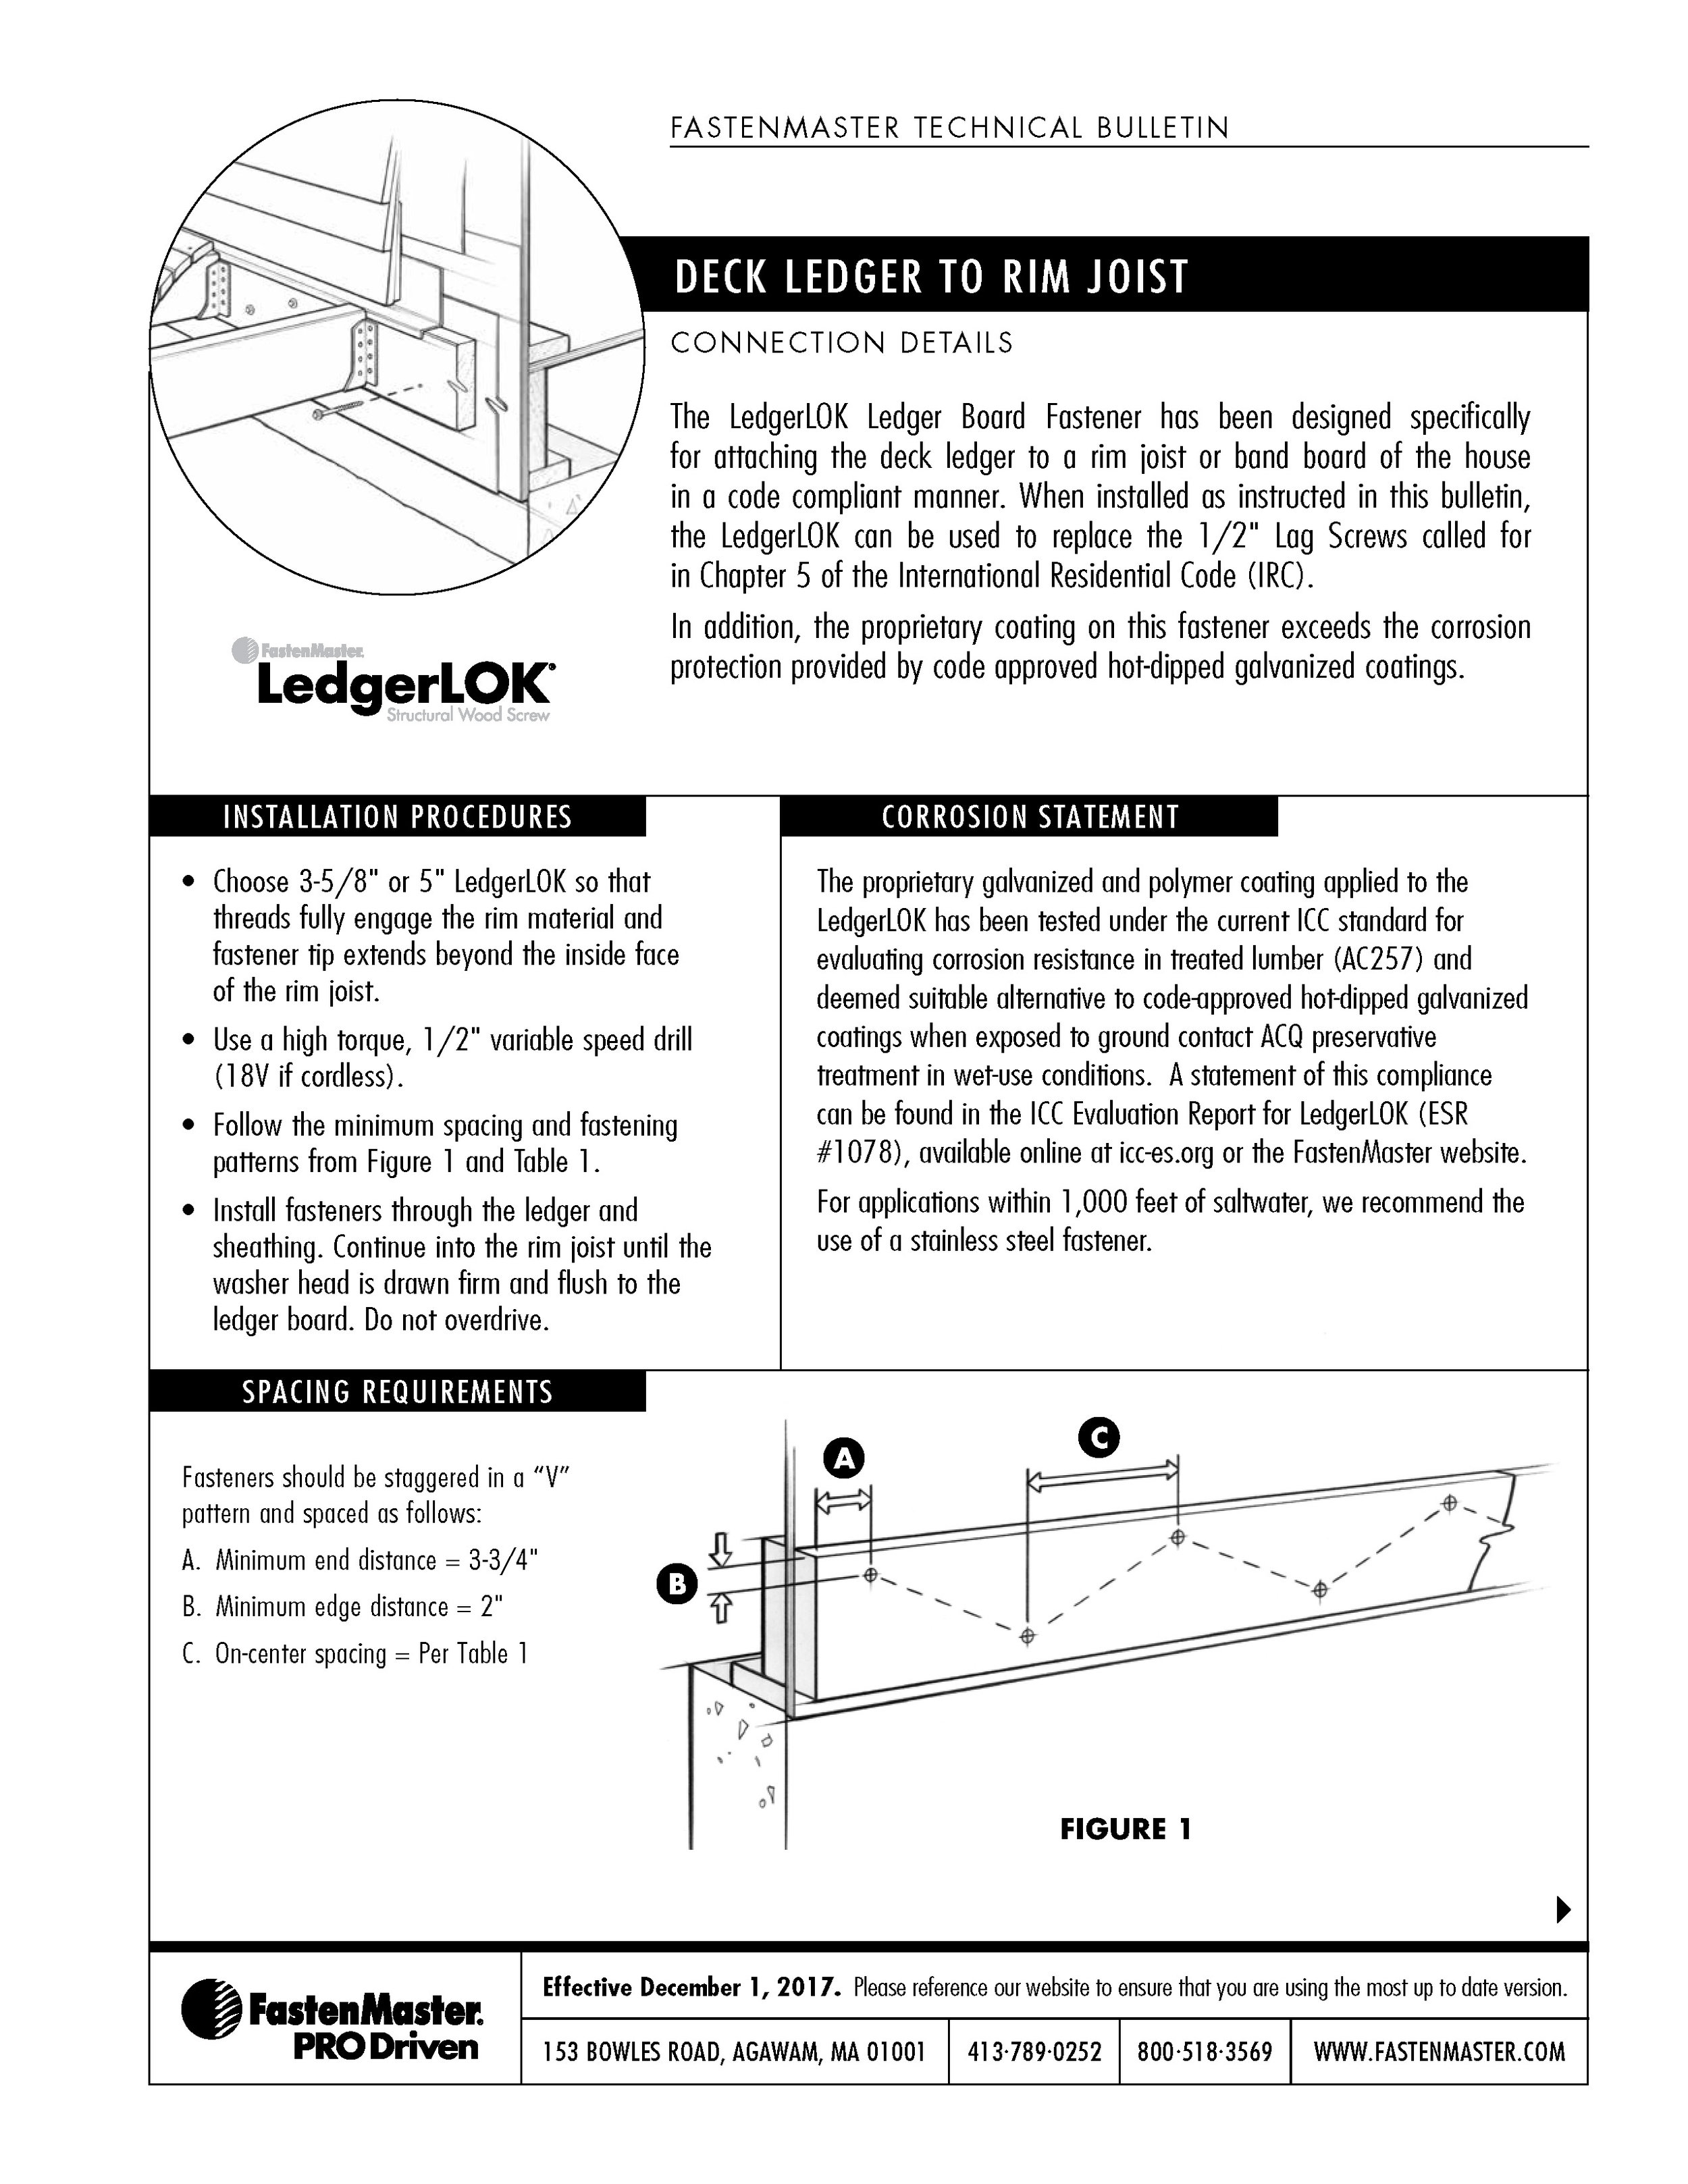 FMTECH-DECKLEDG_1117-3_Page2_Page_1.jpg